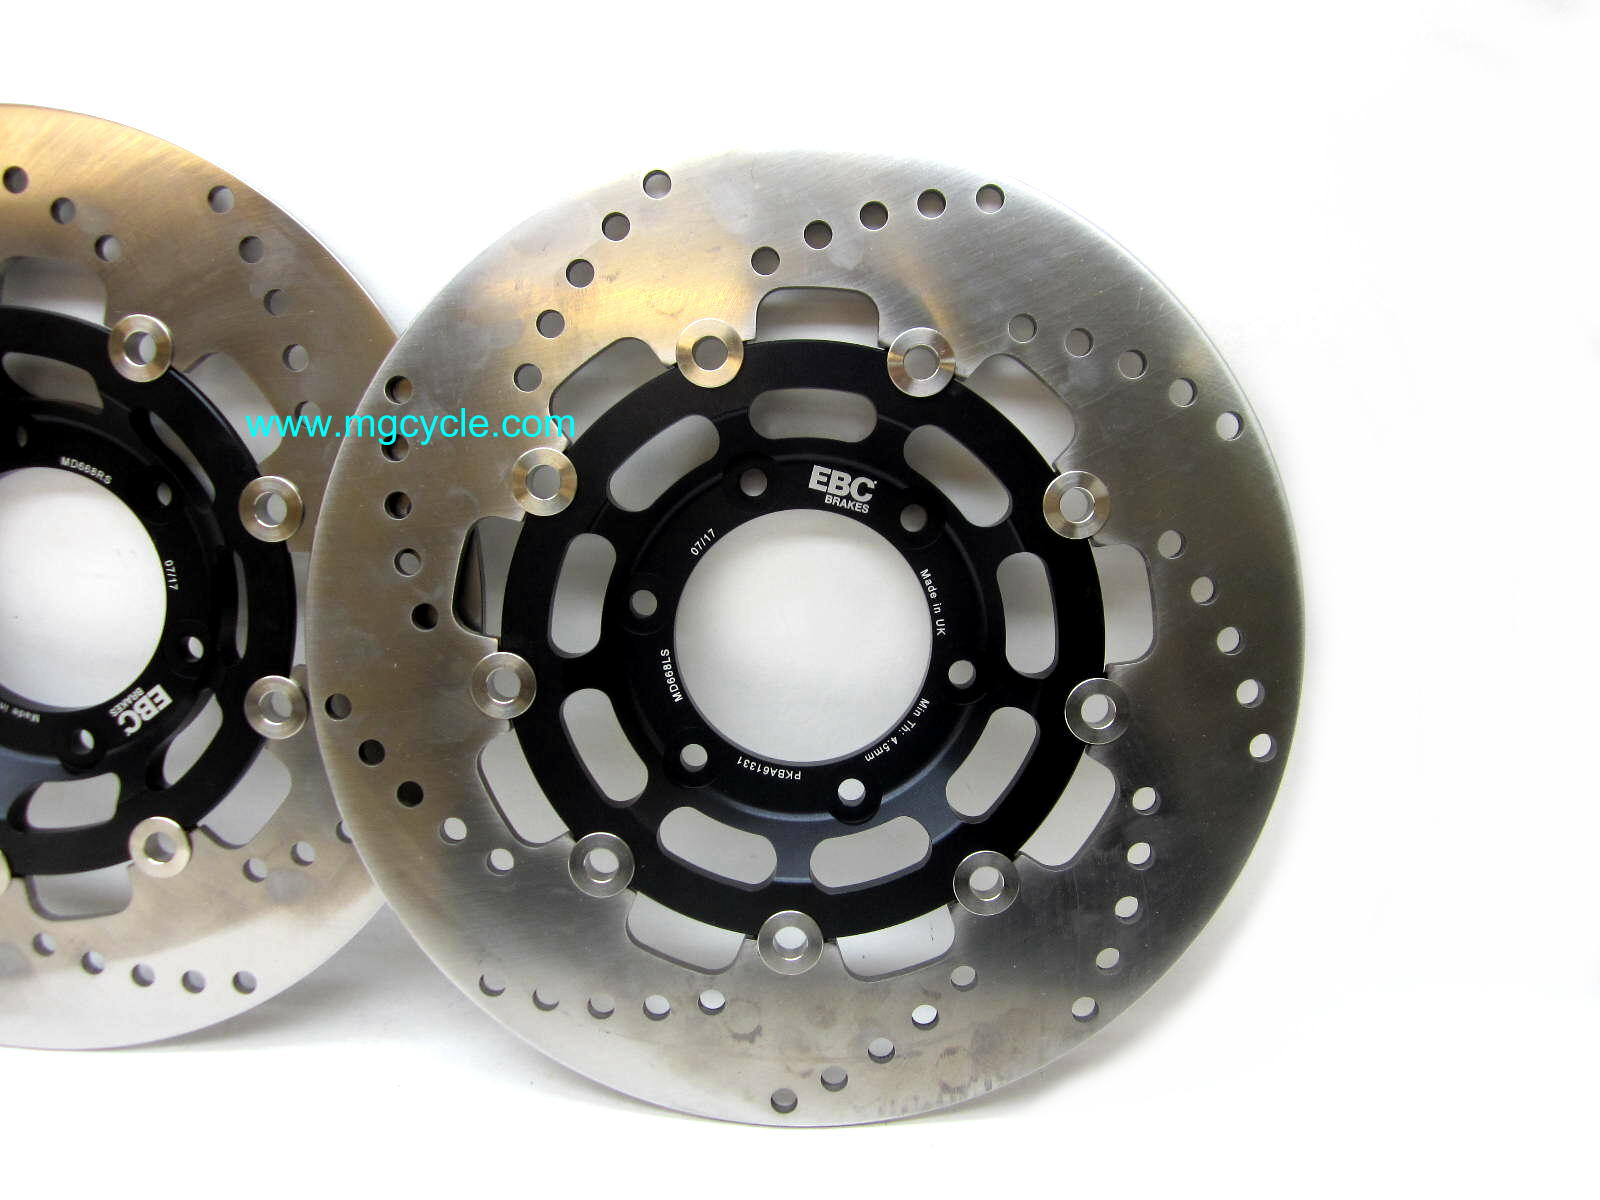 New Black EBC 300mm Pro-lite full floating brake disks, pair